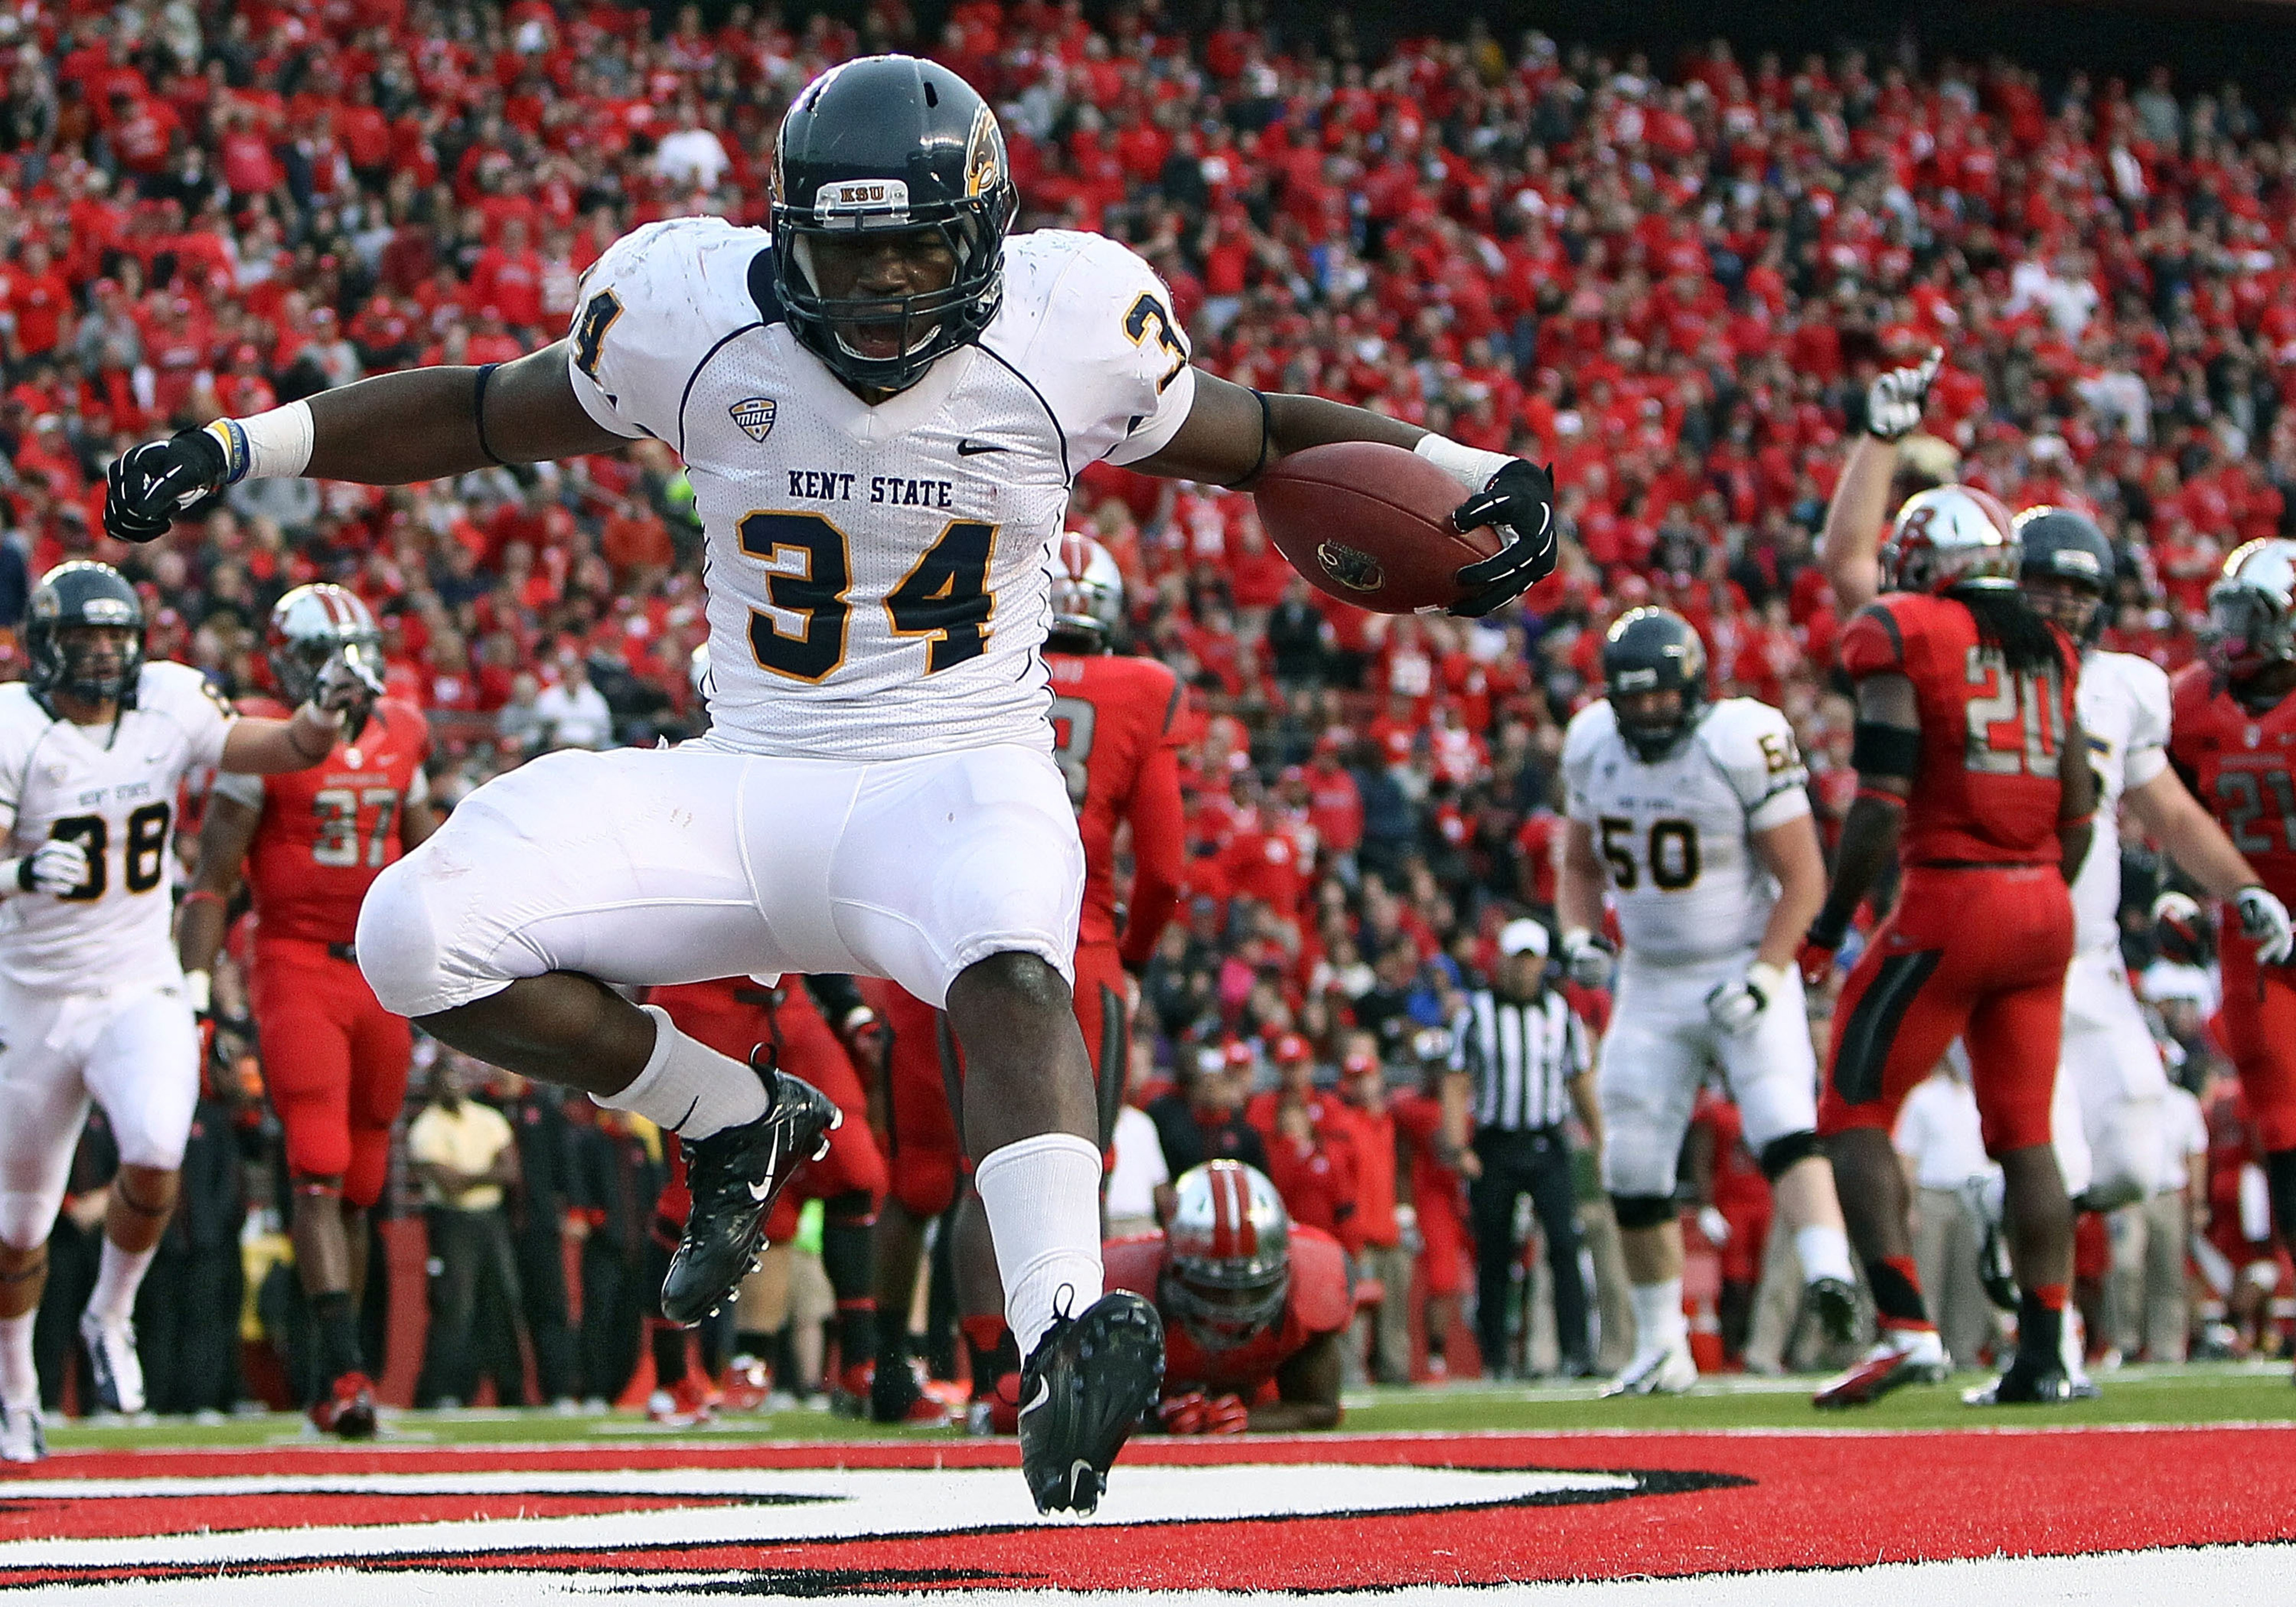 Kent State RB Trayion Durham.